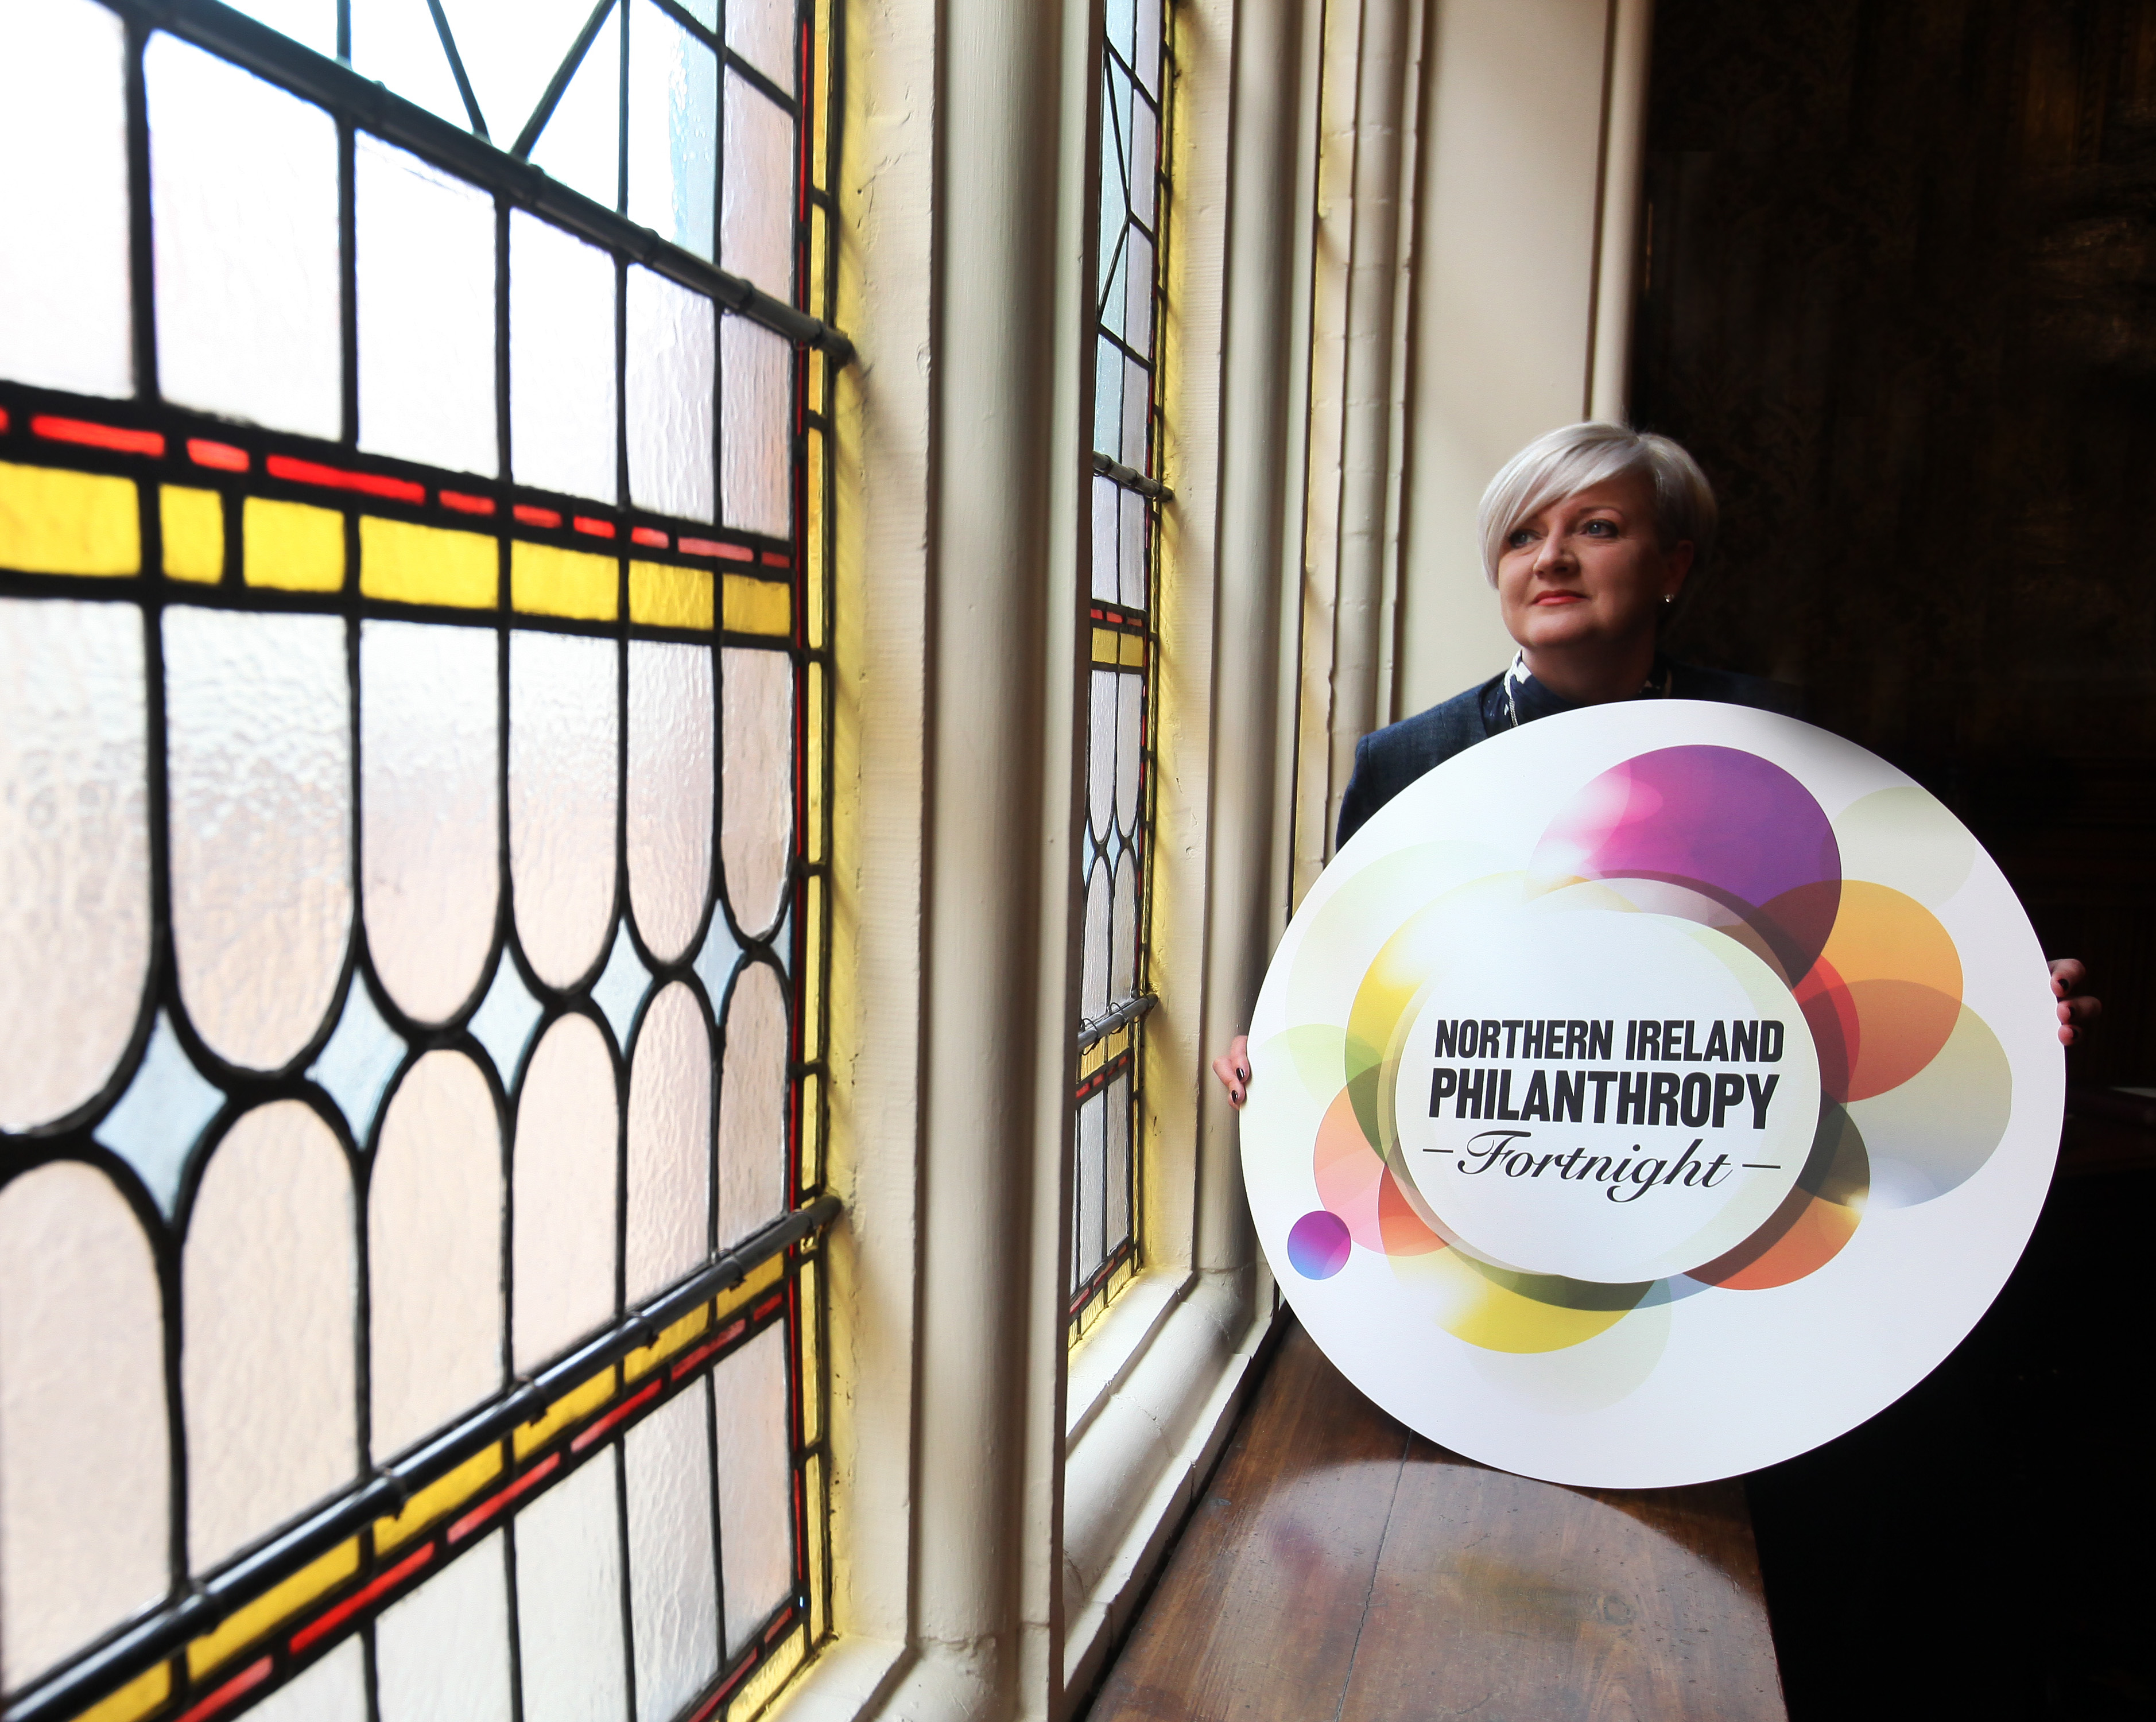 Giving in spotlight with launch of NI's first Philanthropy Fortnight